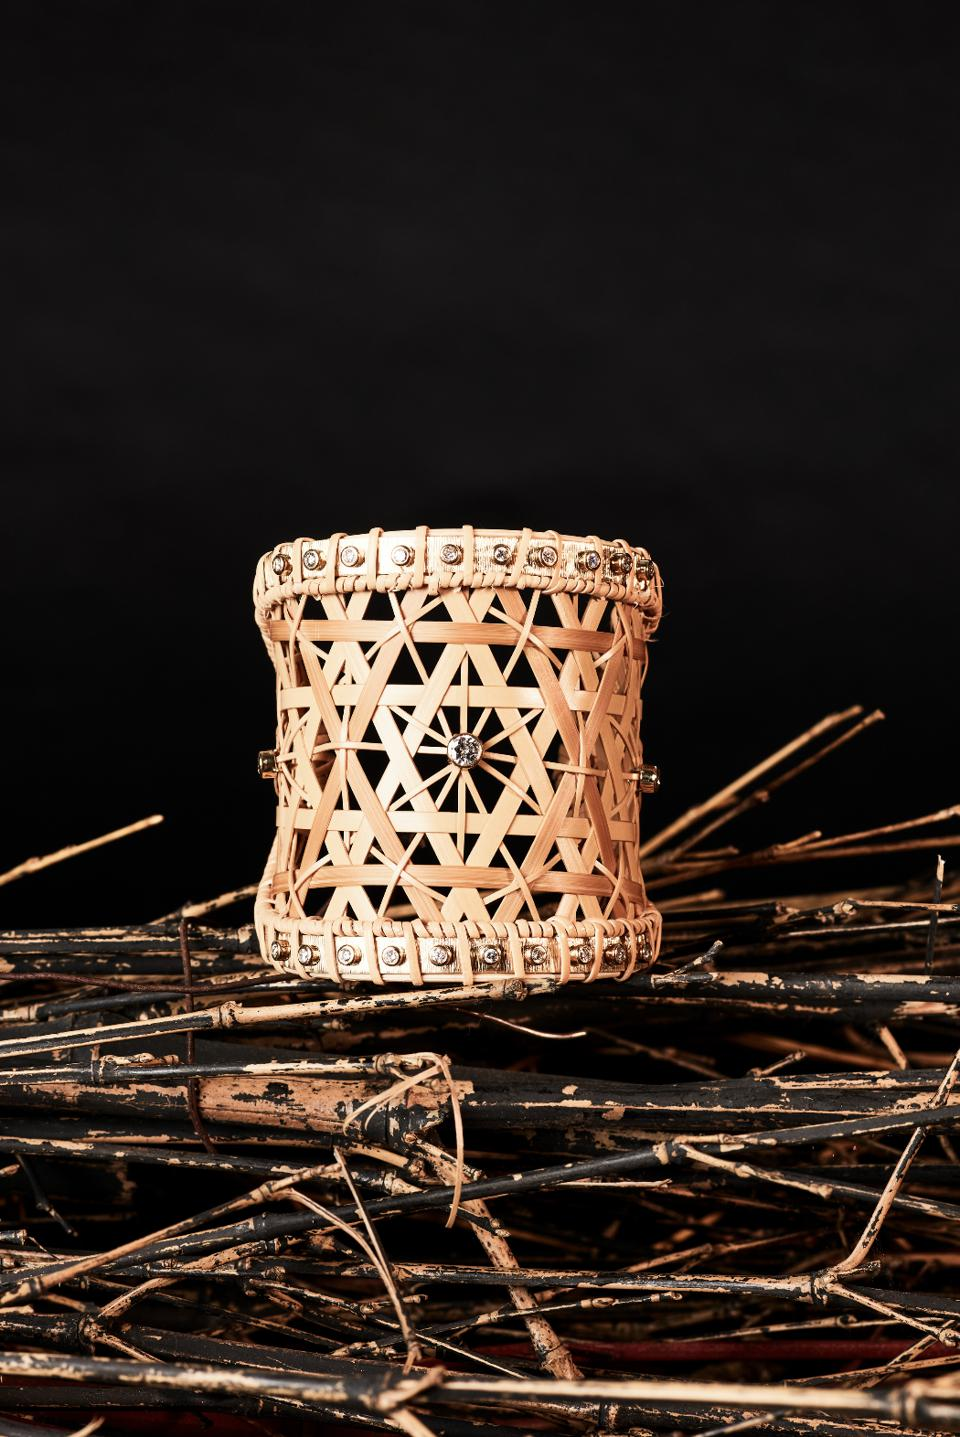 Silvia Furmanovich used weaving techniques to craft exquisite pieces from bamboo